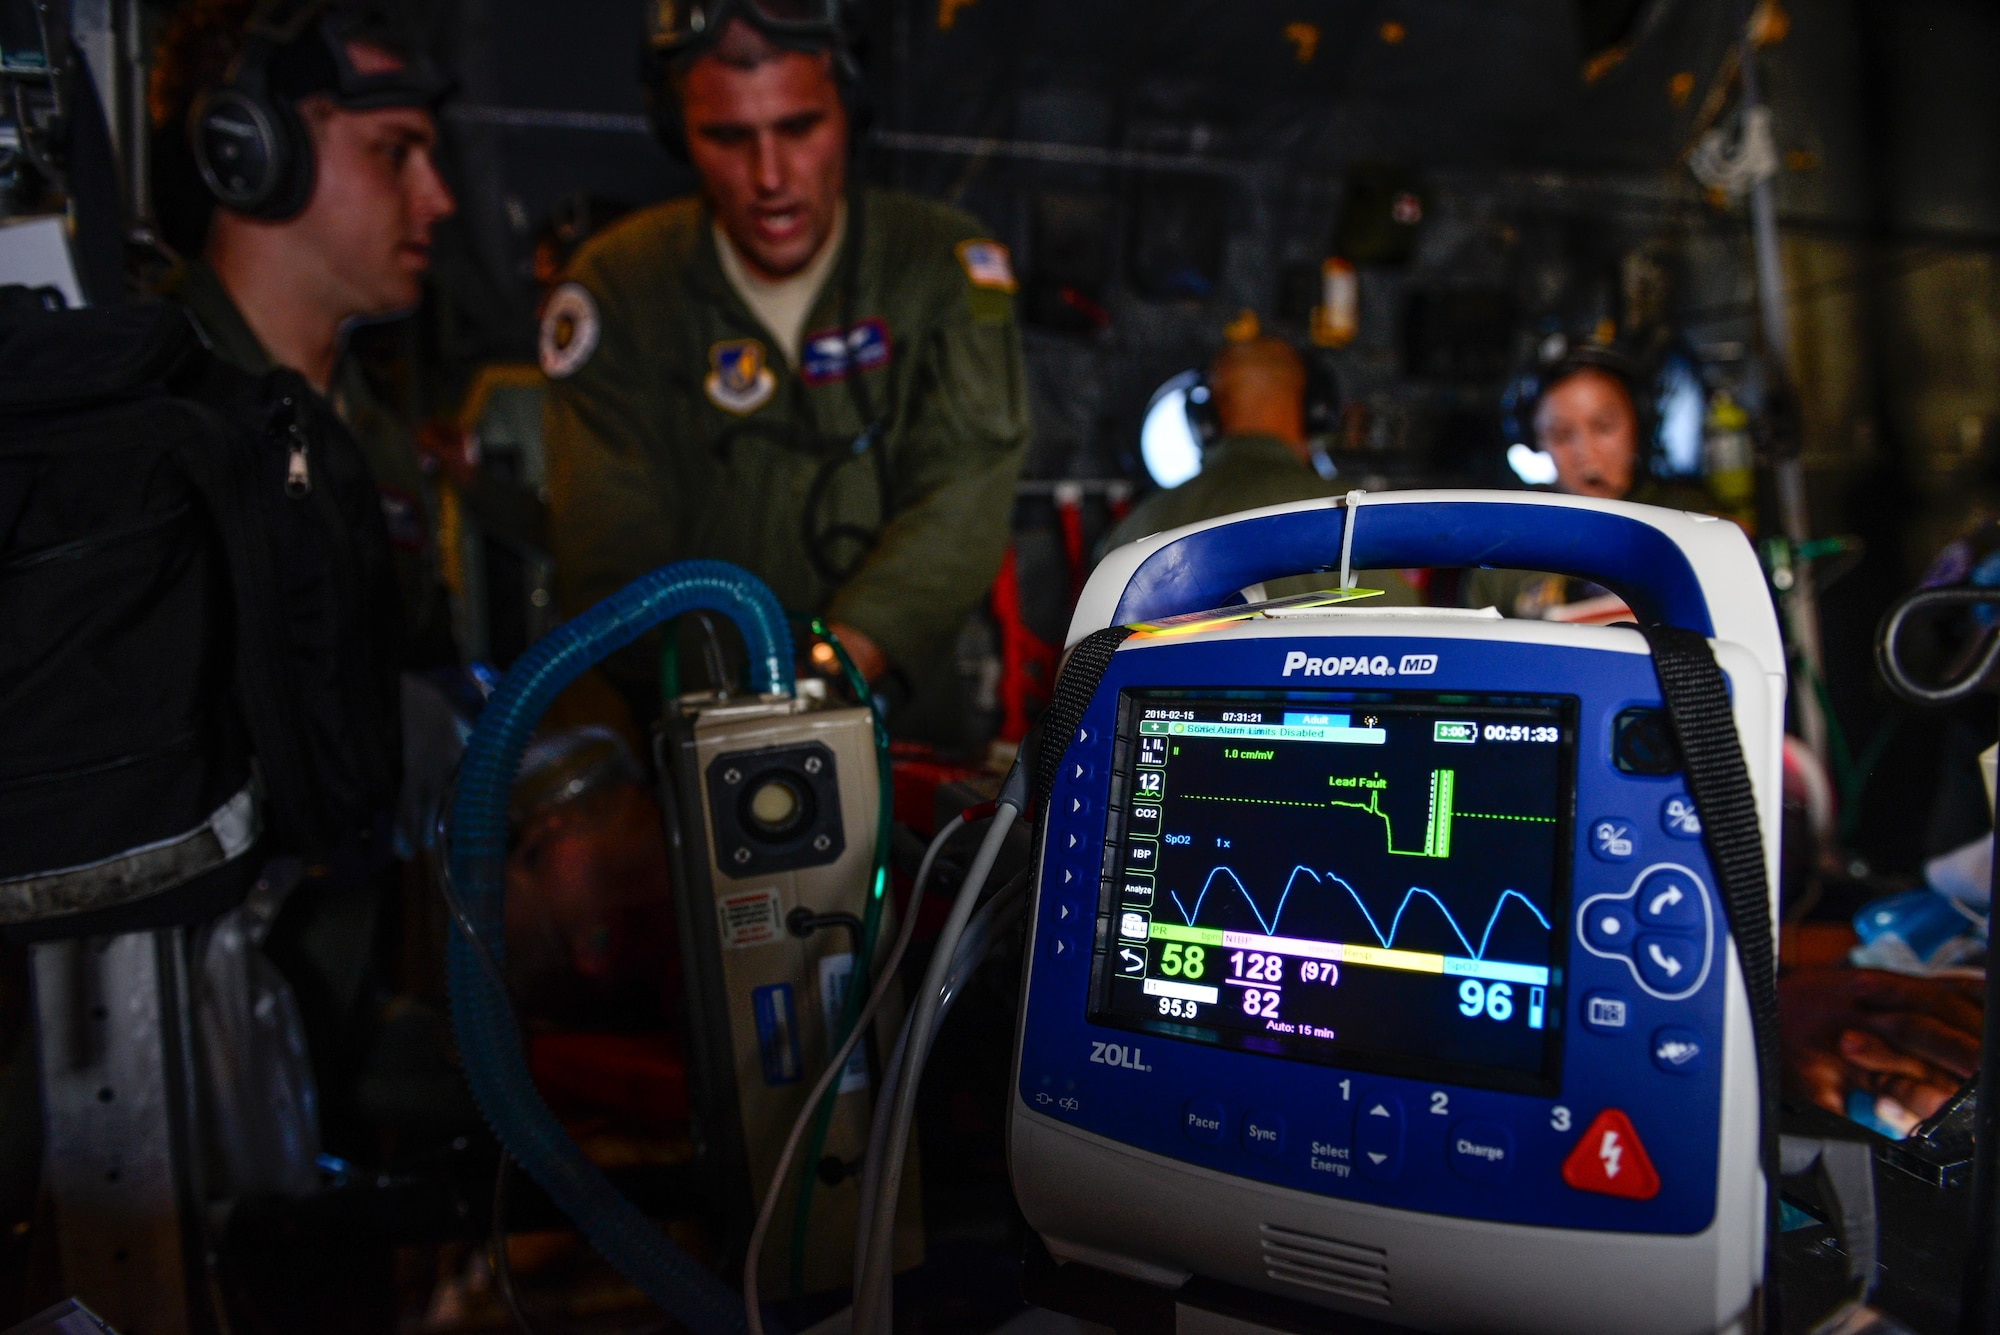 Staff Sgt. Matthew Flowers, an aeromedical evacuation technician with the 18th Aeromedical Evacuation Squadron, performs simulated CPR aboard a U.S. Air Force C-130 Hercules Feb. 15, 2016, during an expeditionary medical support exercise above the Pacific Ocean near Guam. Exercise Cope North 16 enhances humanitarian assistance and disaster relief crisis response capabilities between six nations and lays the foundation for regional cooperation during real-world contingencies in the Indo-Asia-Pacific region. (U.S. Air Force photo by Staff Sgt. Alexander W. Riedel/Released)